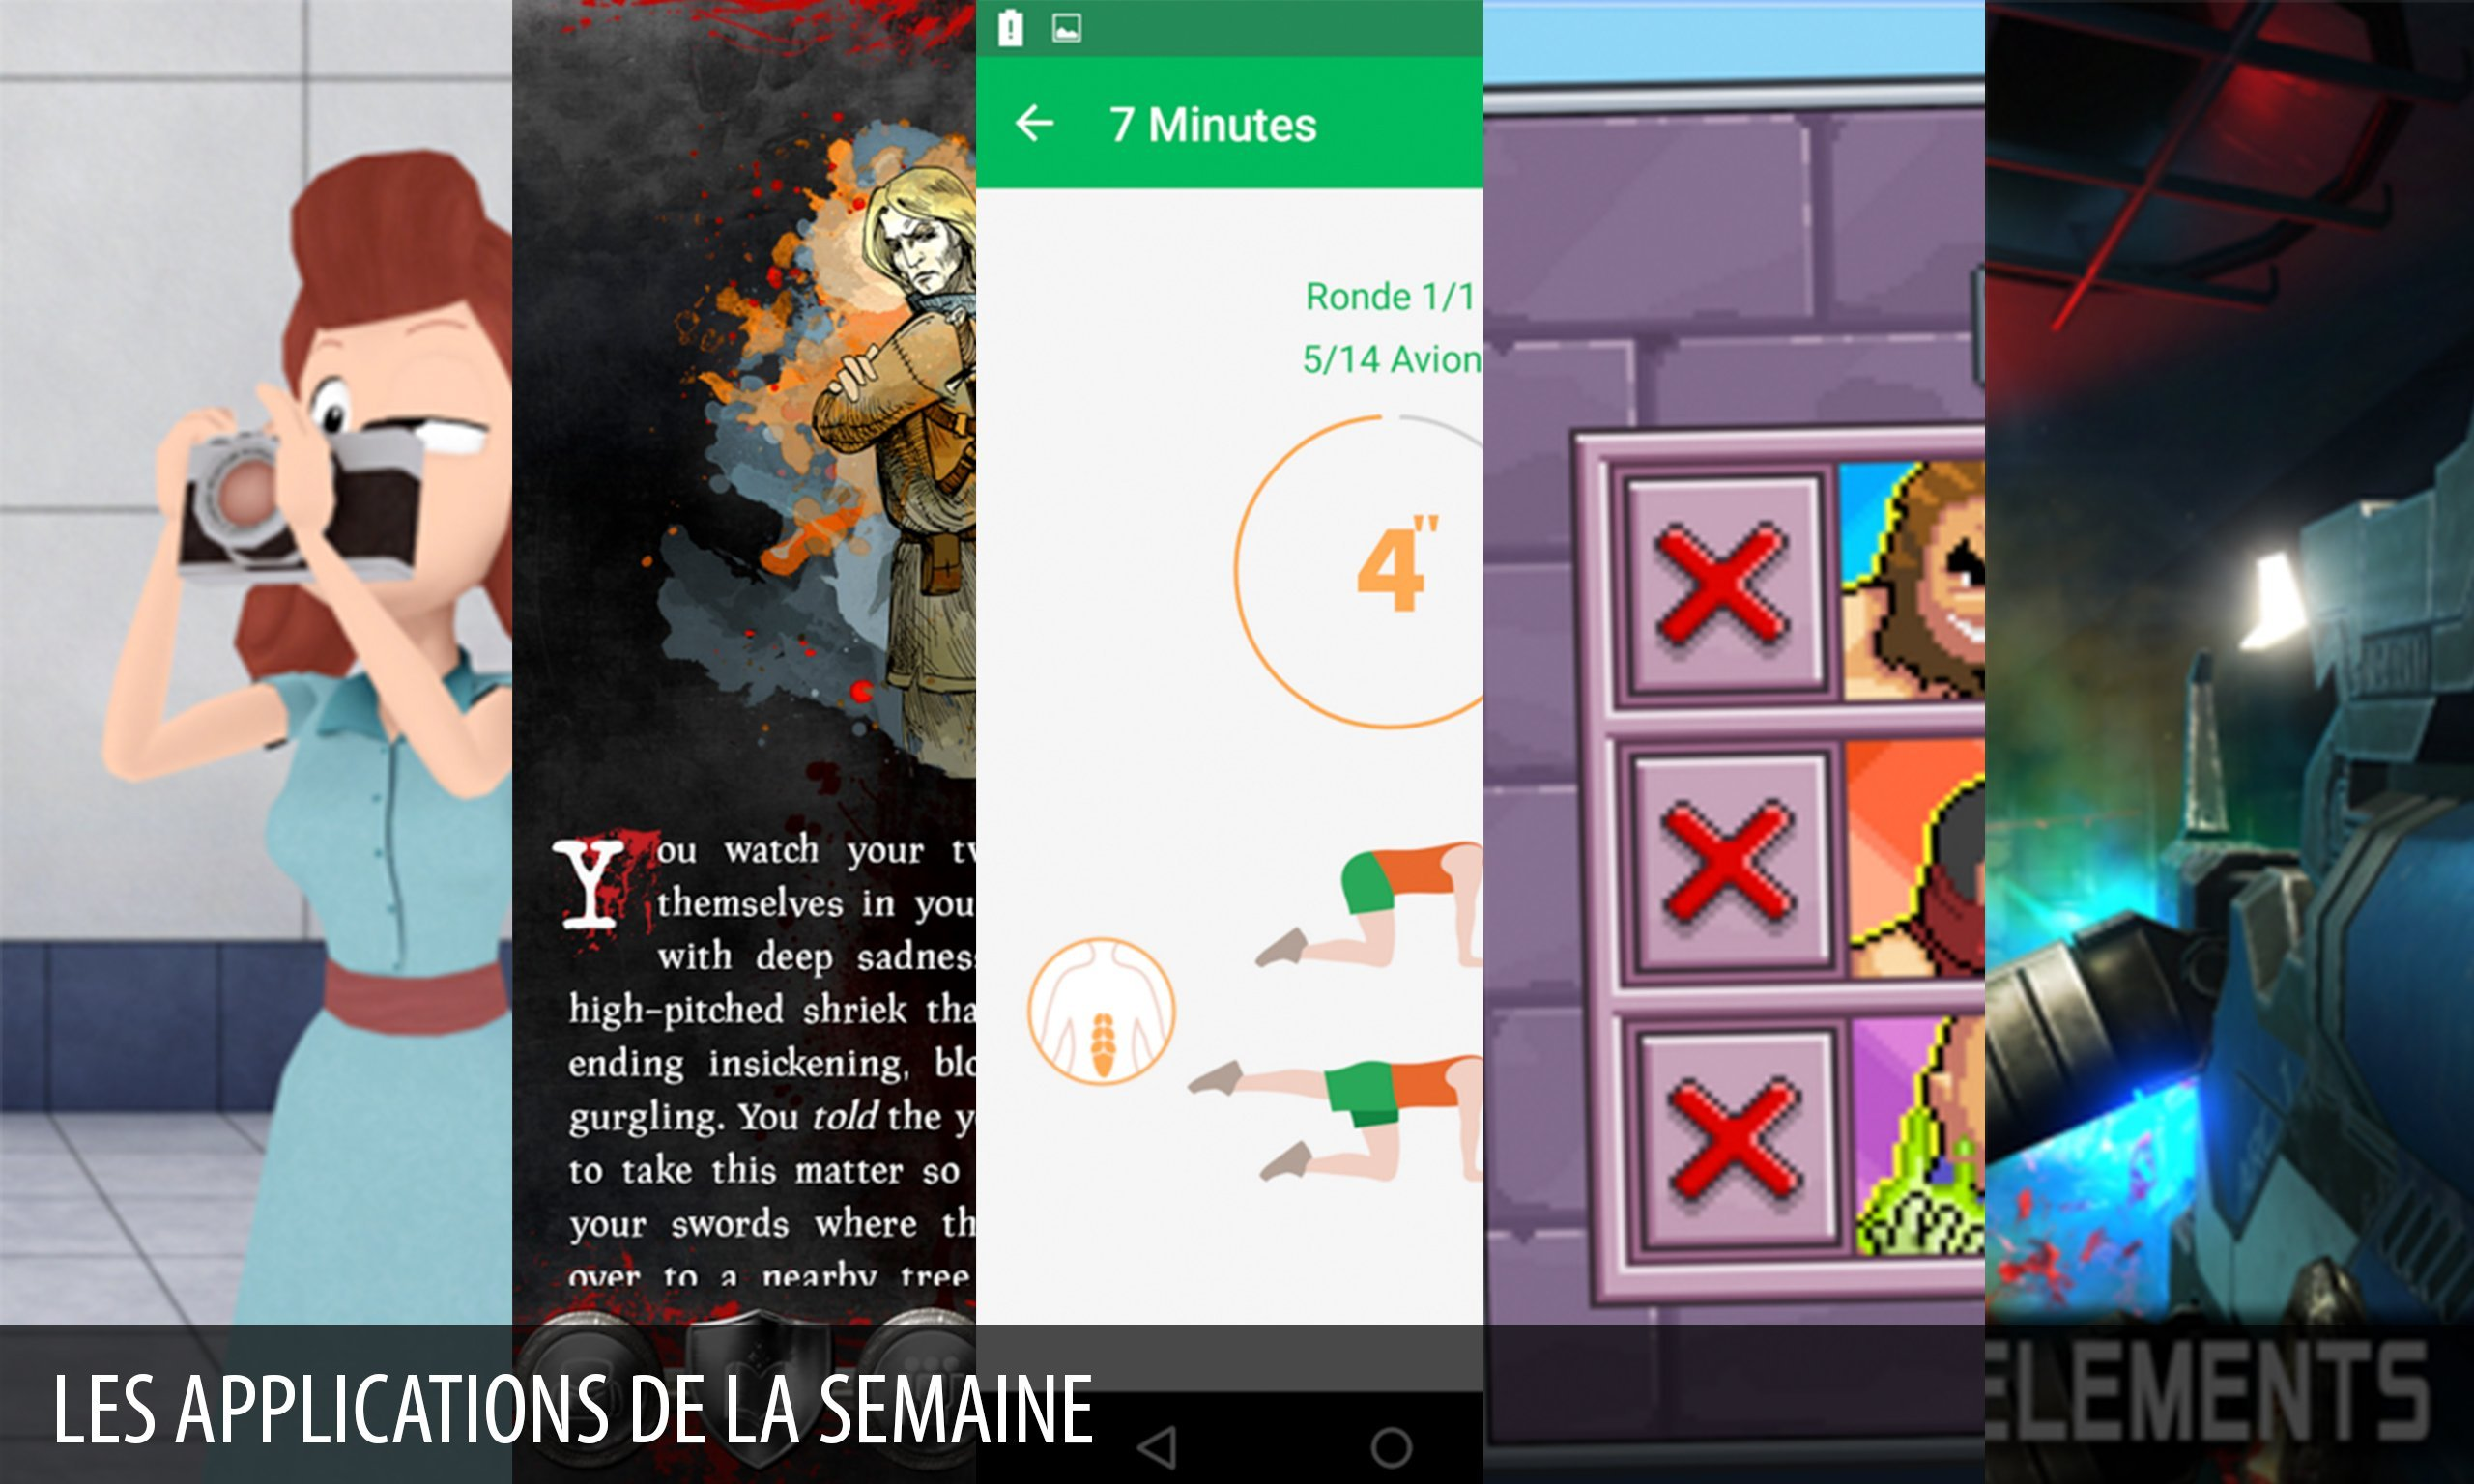 Les apps de la semaine : Dead Effect 2, Devious Dungeon 2…